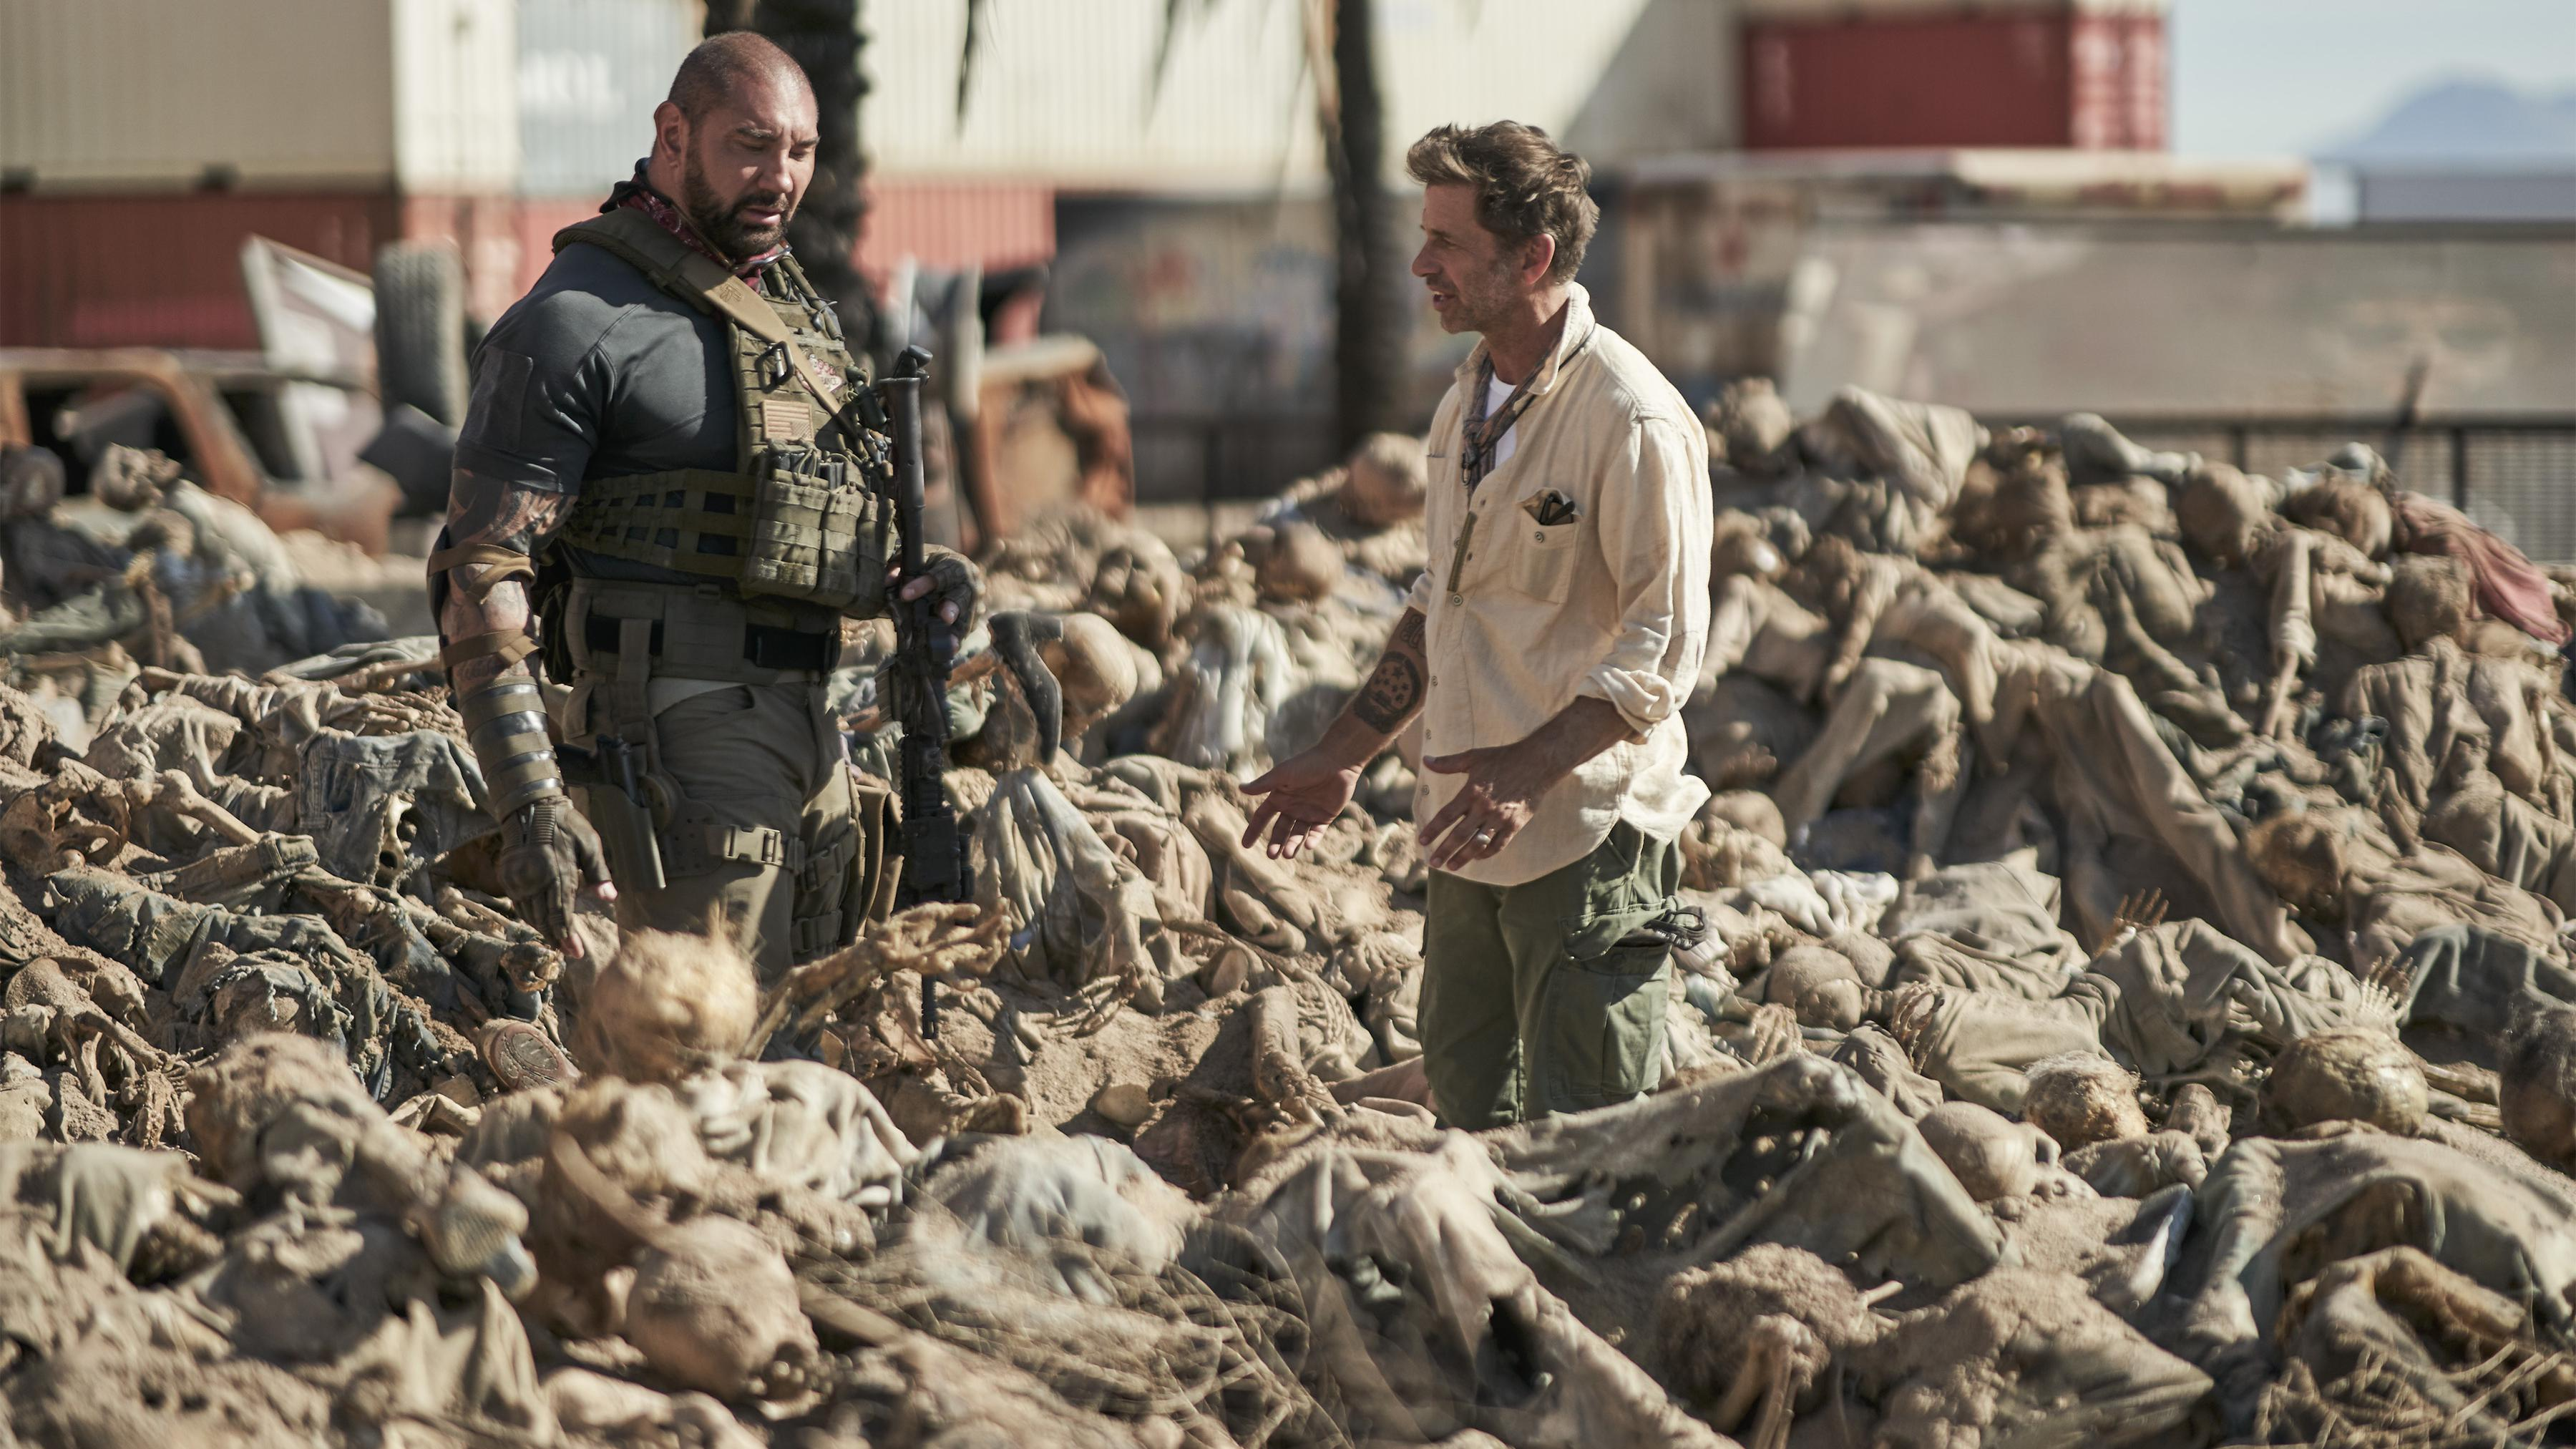 ARMY OF THE DEAD (L to R) DAVE BAUTISTA as SCOTT WARD,ZACK SNYDER (DIRECTOR, PRODUCER, WRITER) in ARMY OF THE DEAD.